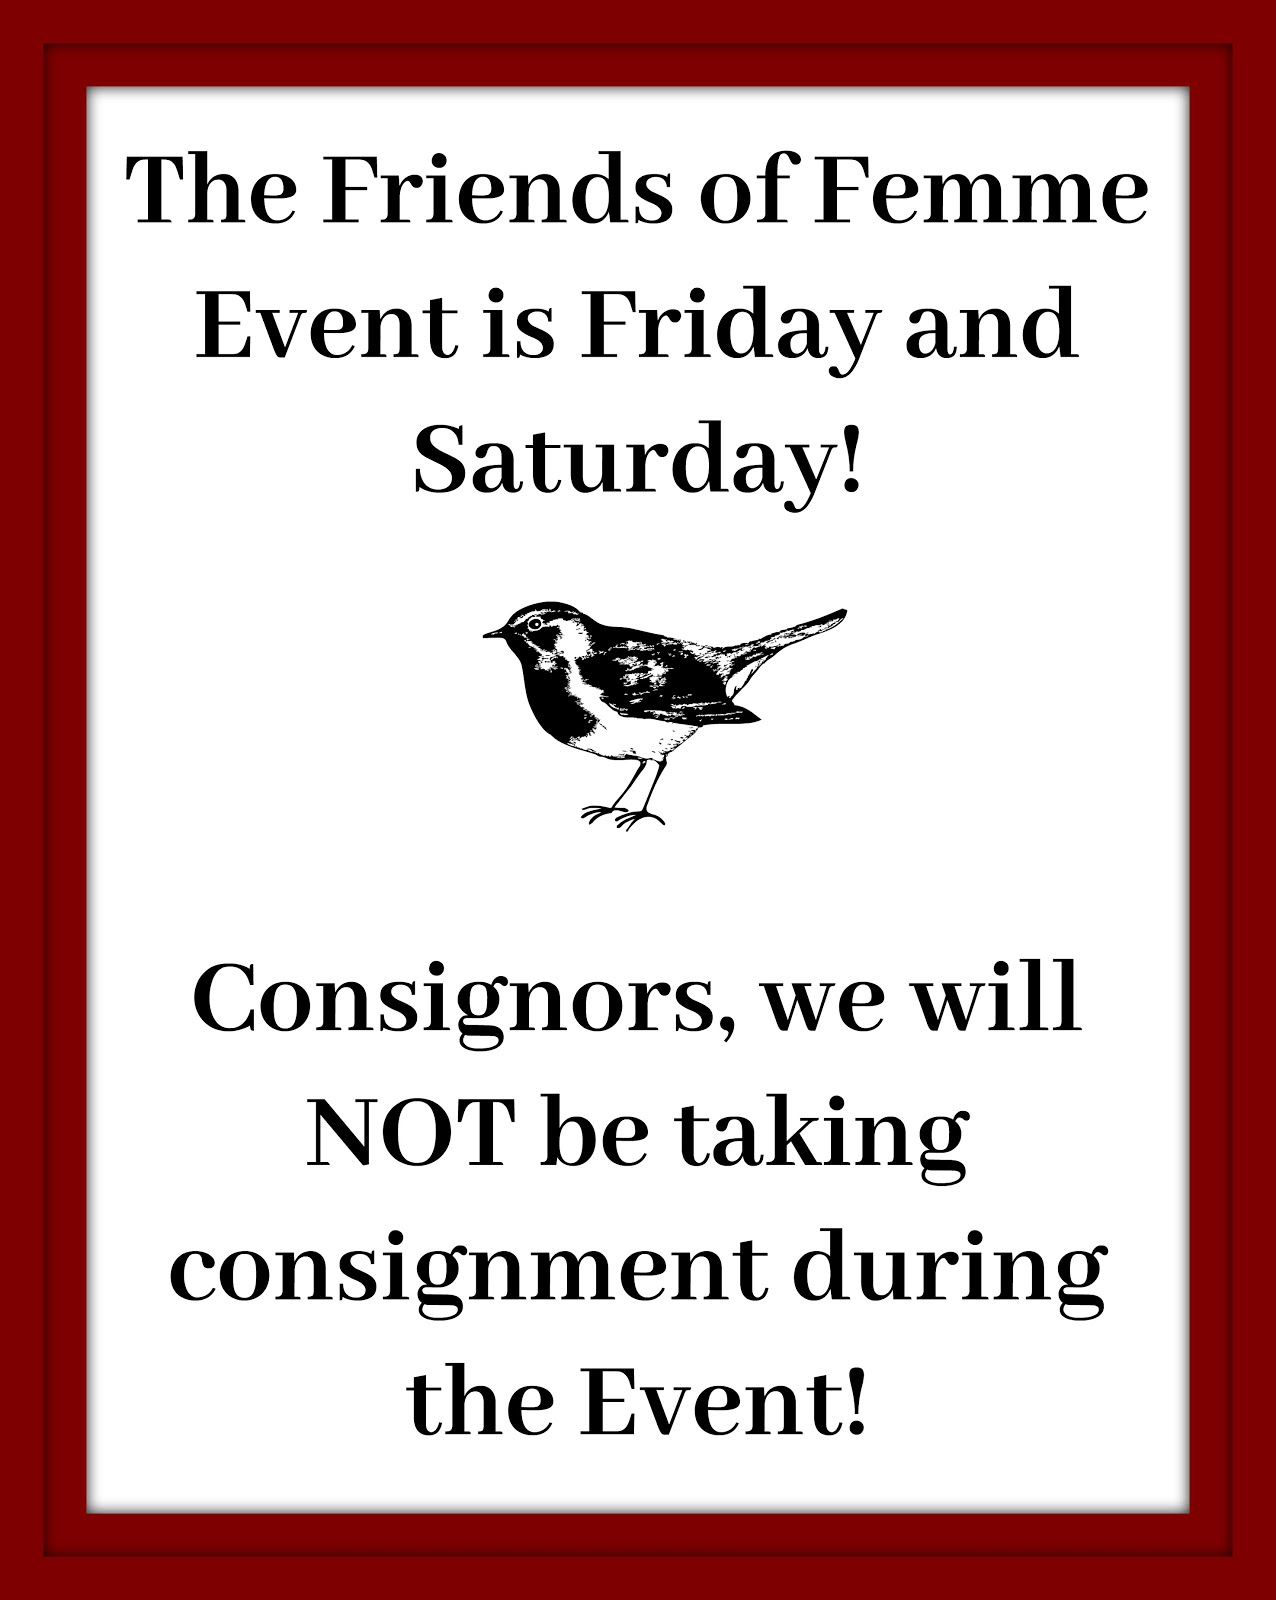 The Friends of Femme Event!